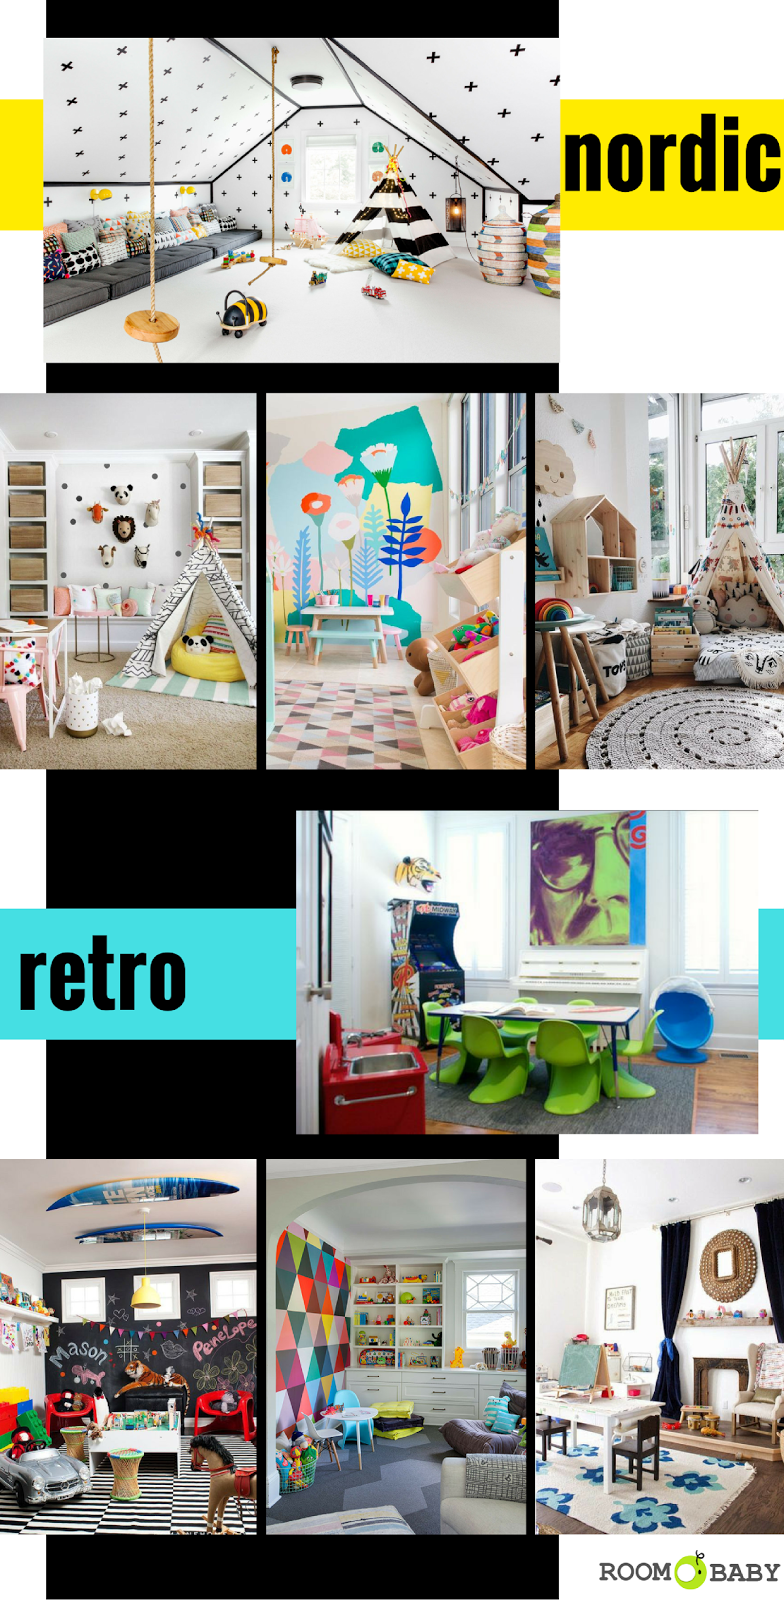 roomobaby* blog: 16 unique playrooms